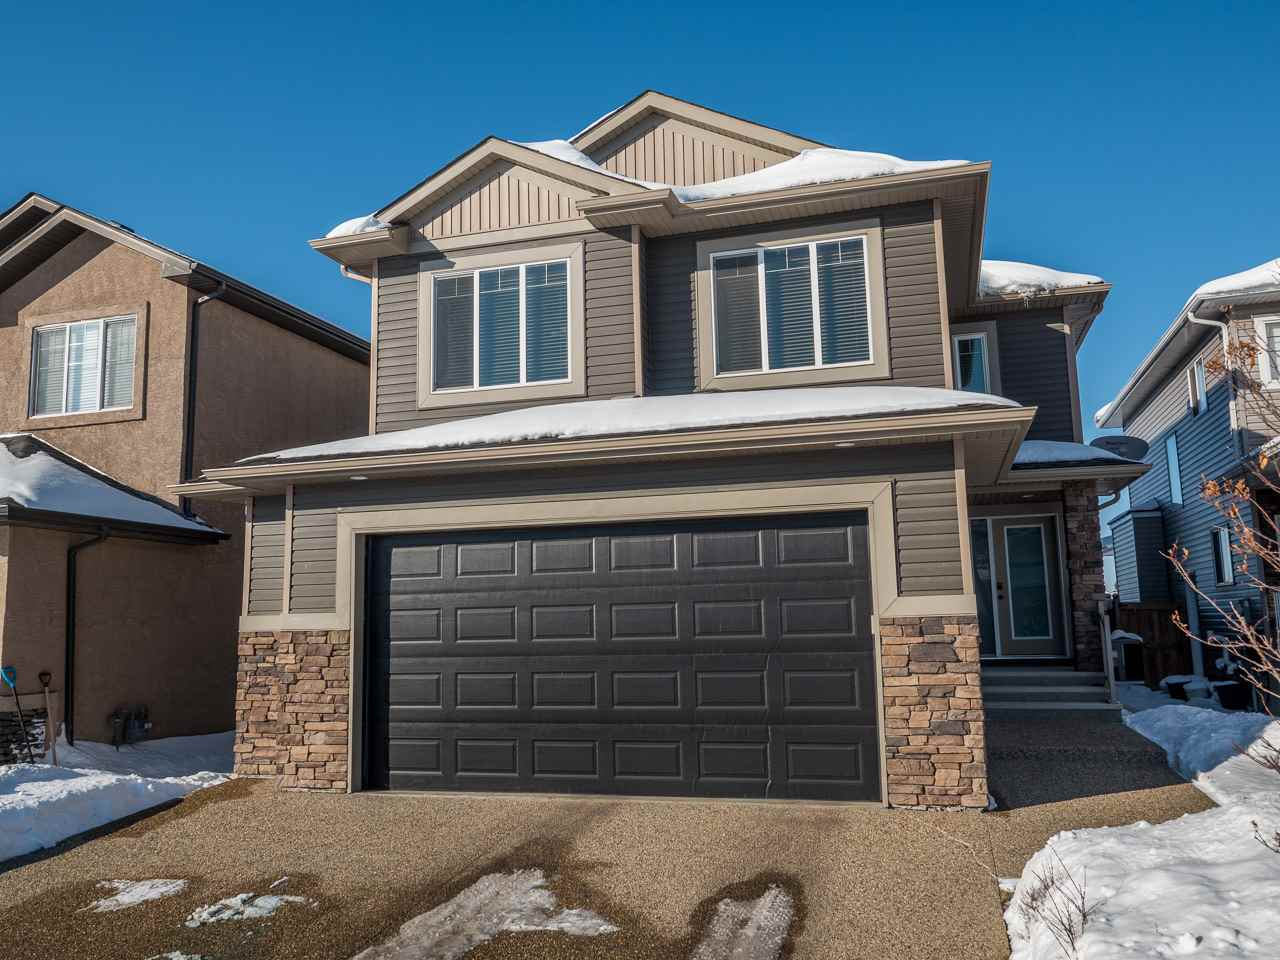 Main Photo: 11118 174A Avenue NW in Edmonton: Zone 27 House for sale : MLS® # E4099514